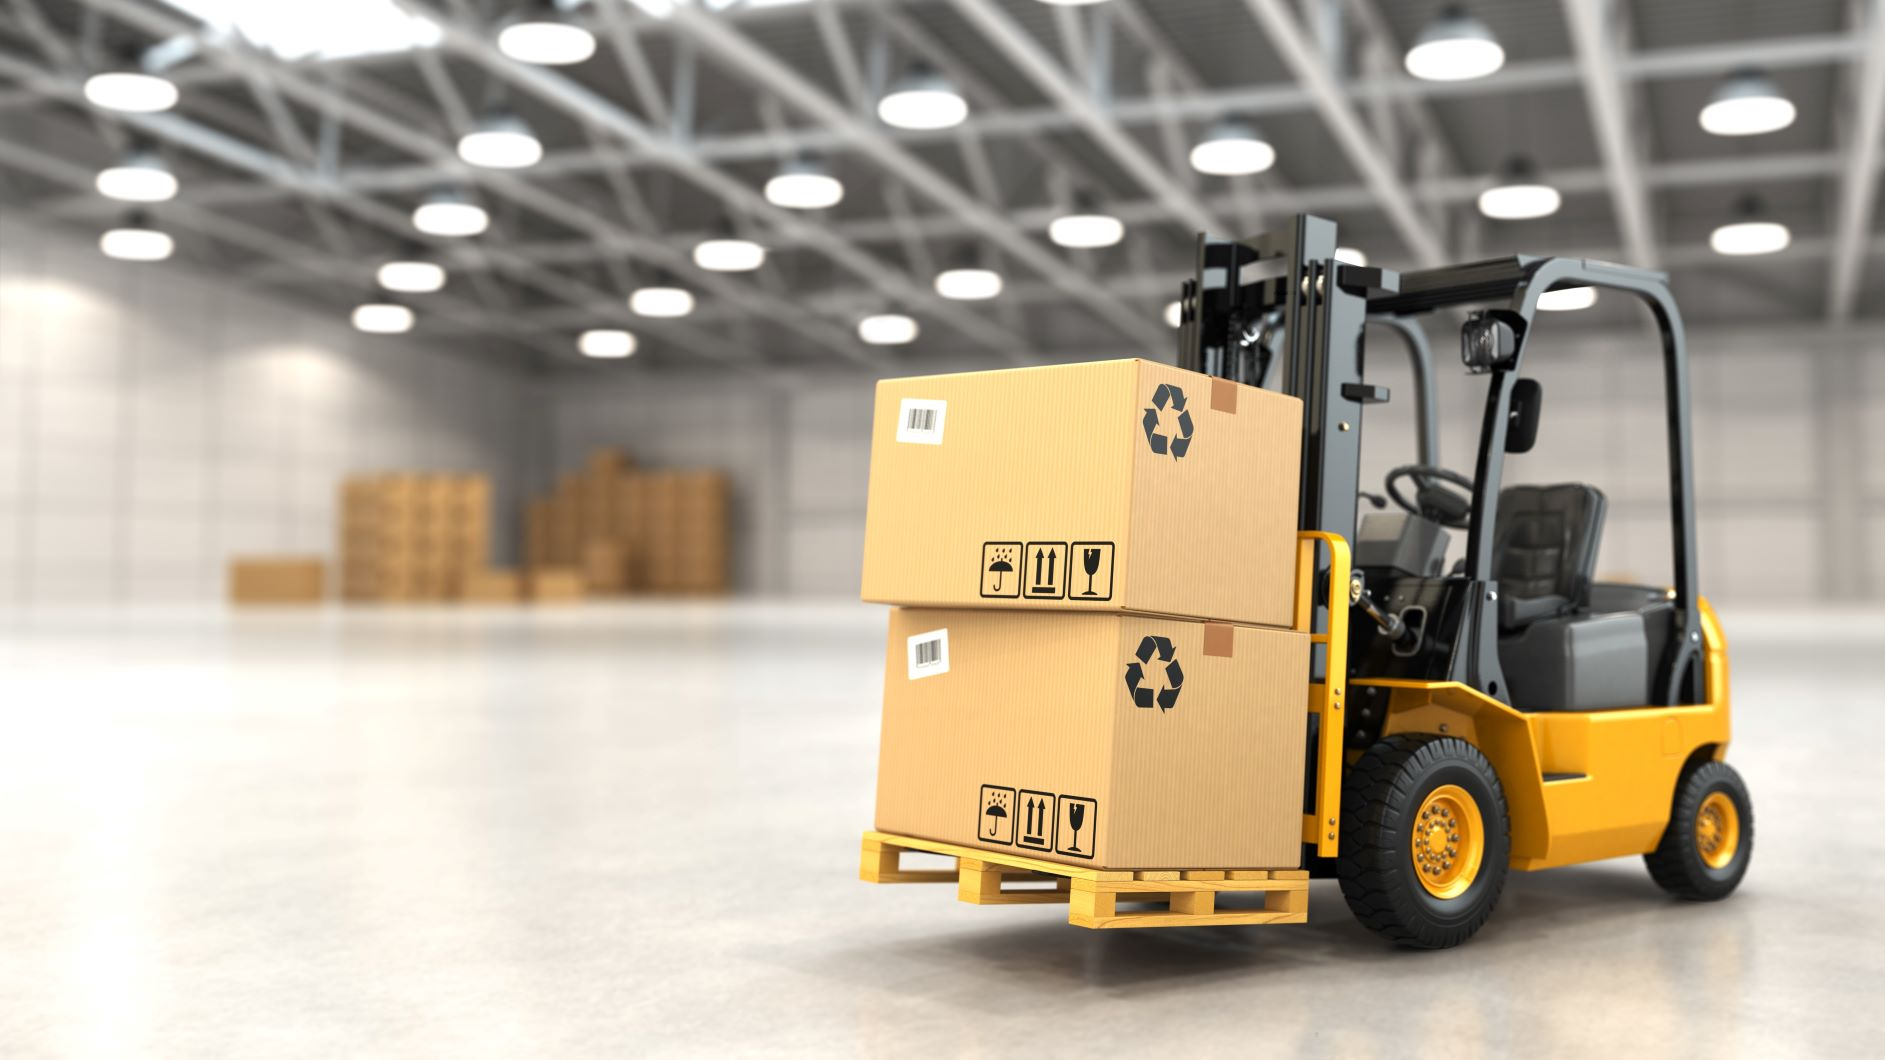 Types of Forklifts: Which Machine is Best for Me?